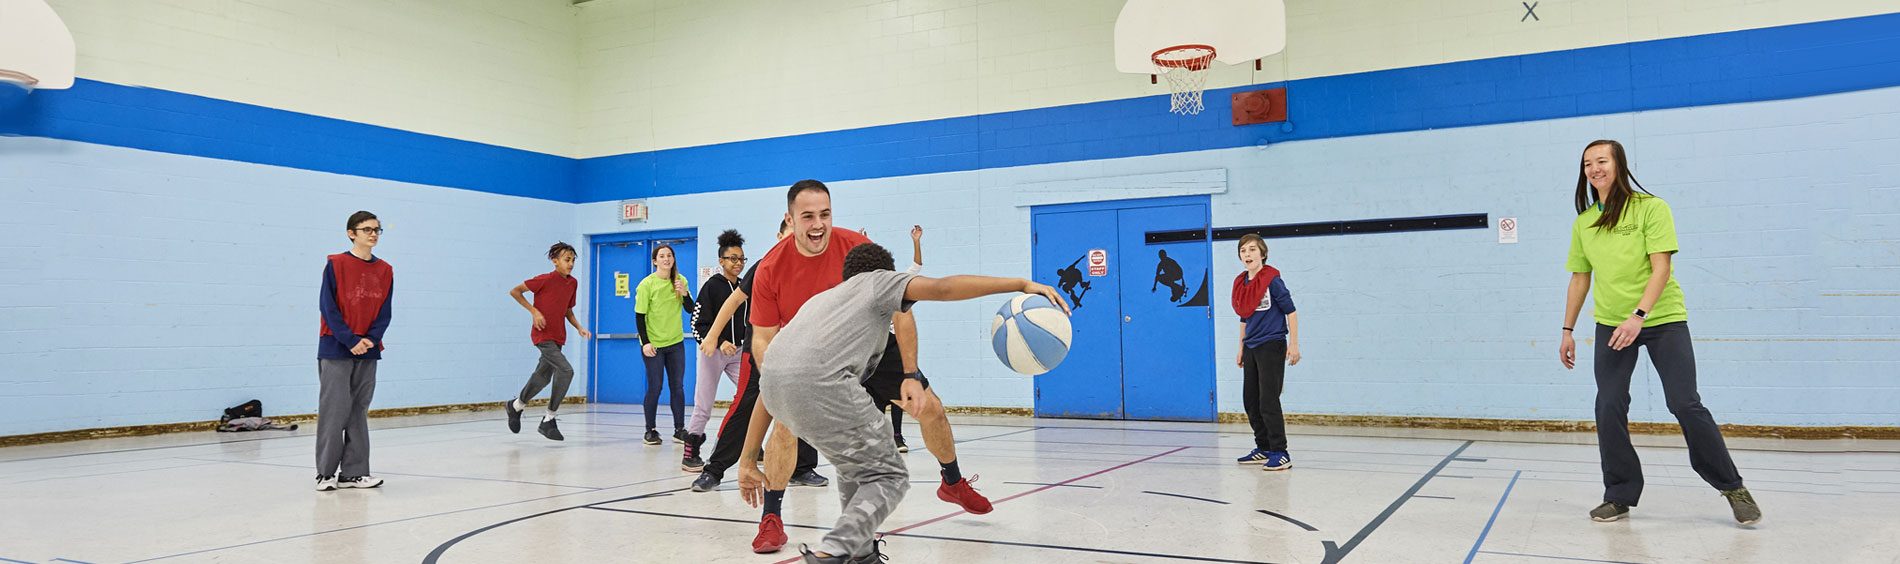 Image of playing basketball at Woodman Community Centre